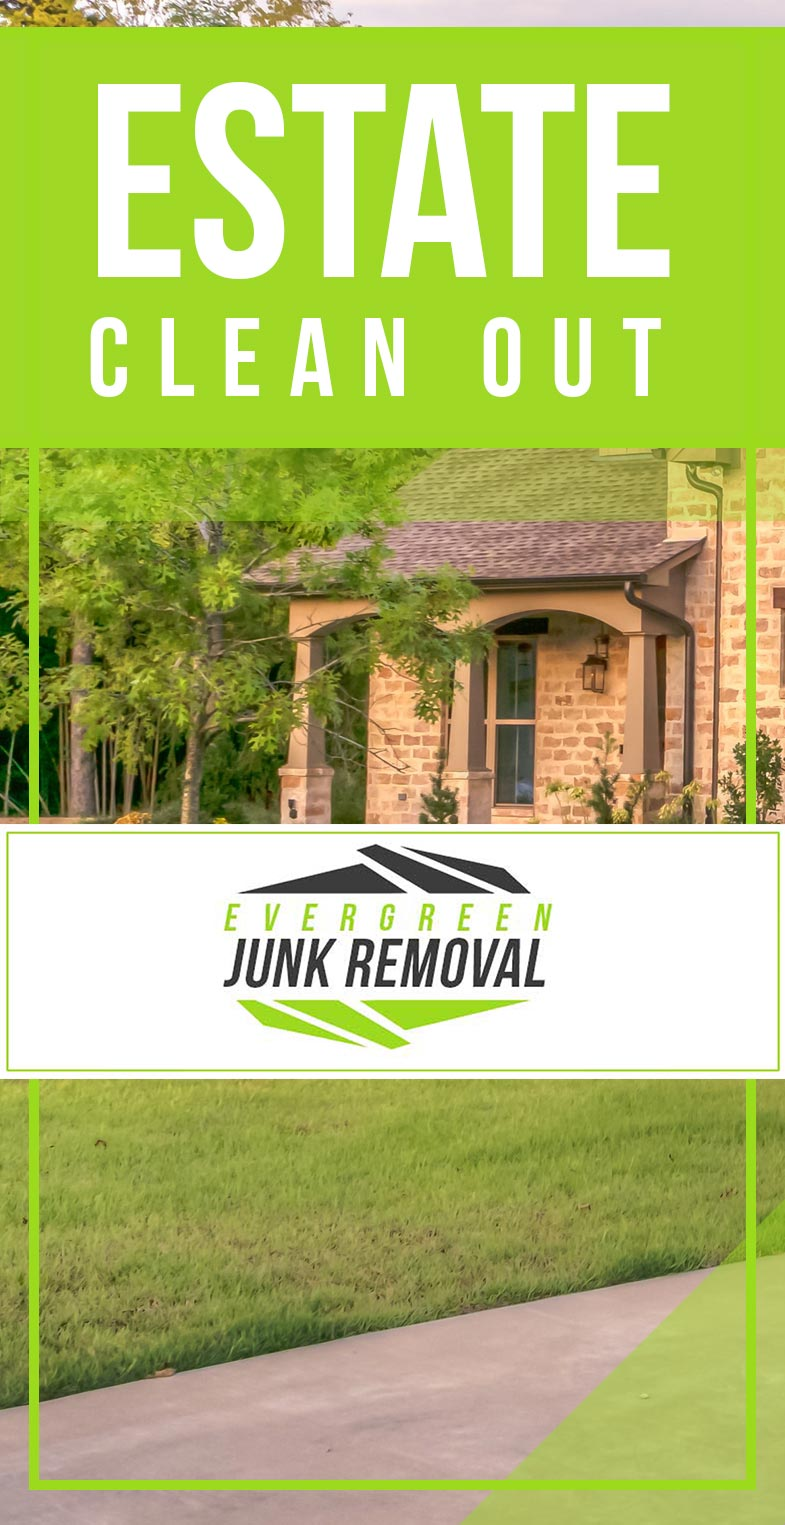 Jacinto City Property Clean Out